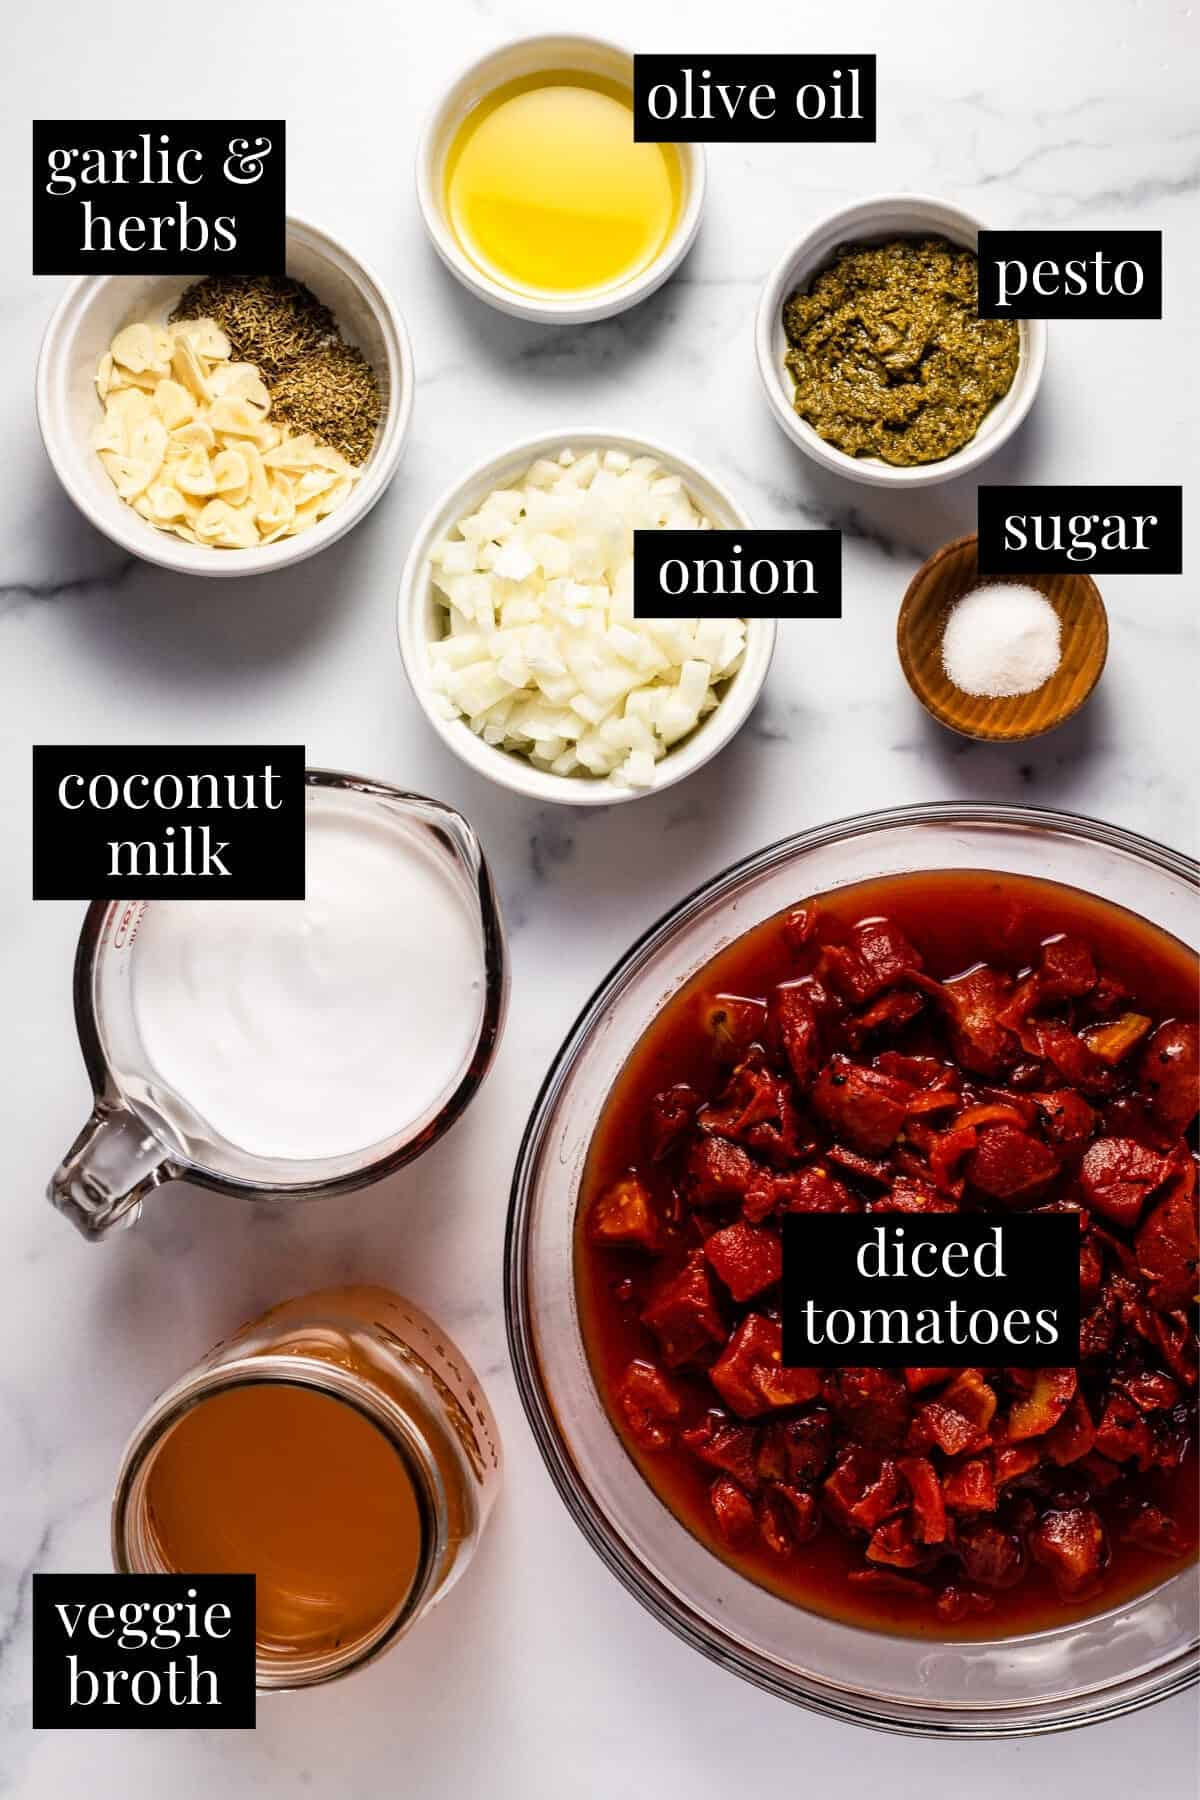 White marble counter top with ingredients to make creamy vegan tomato soup